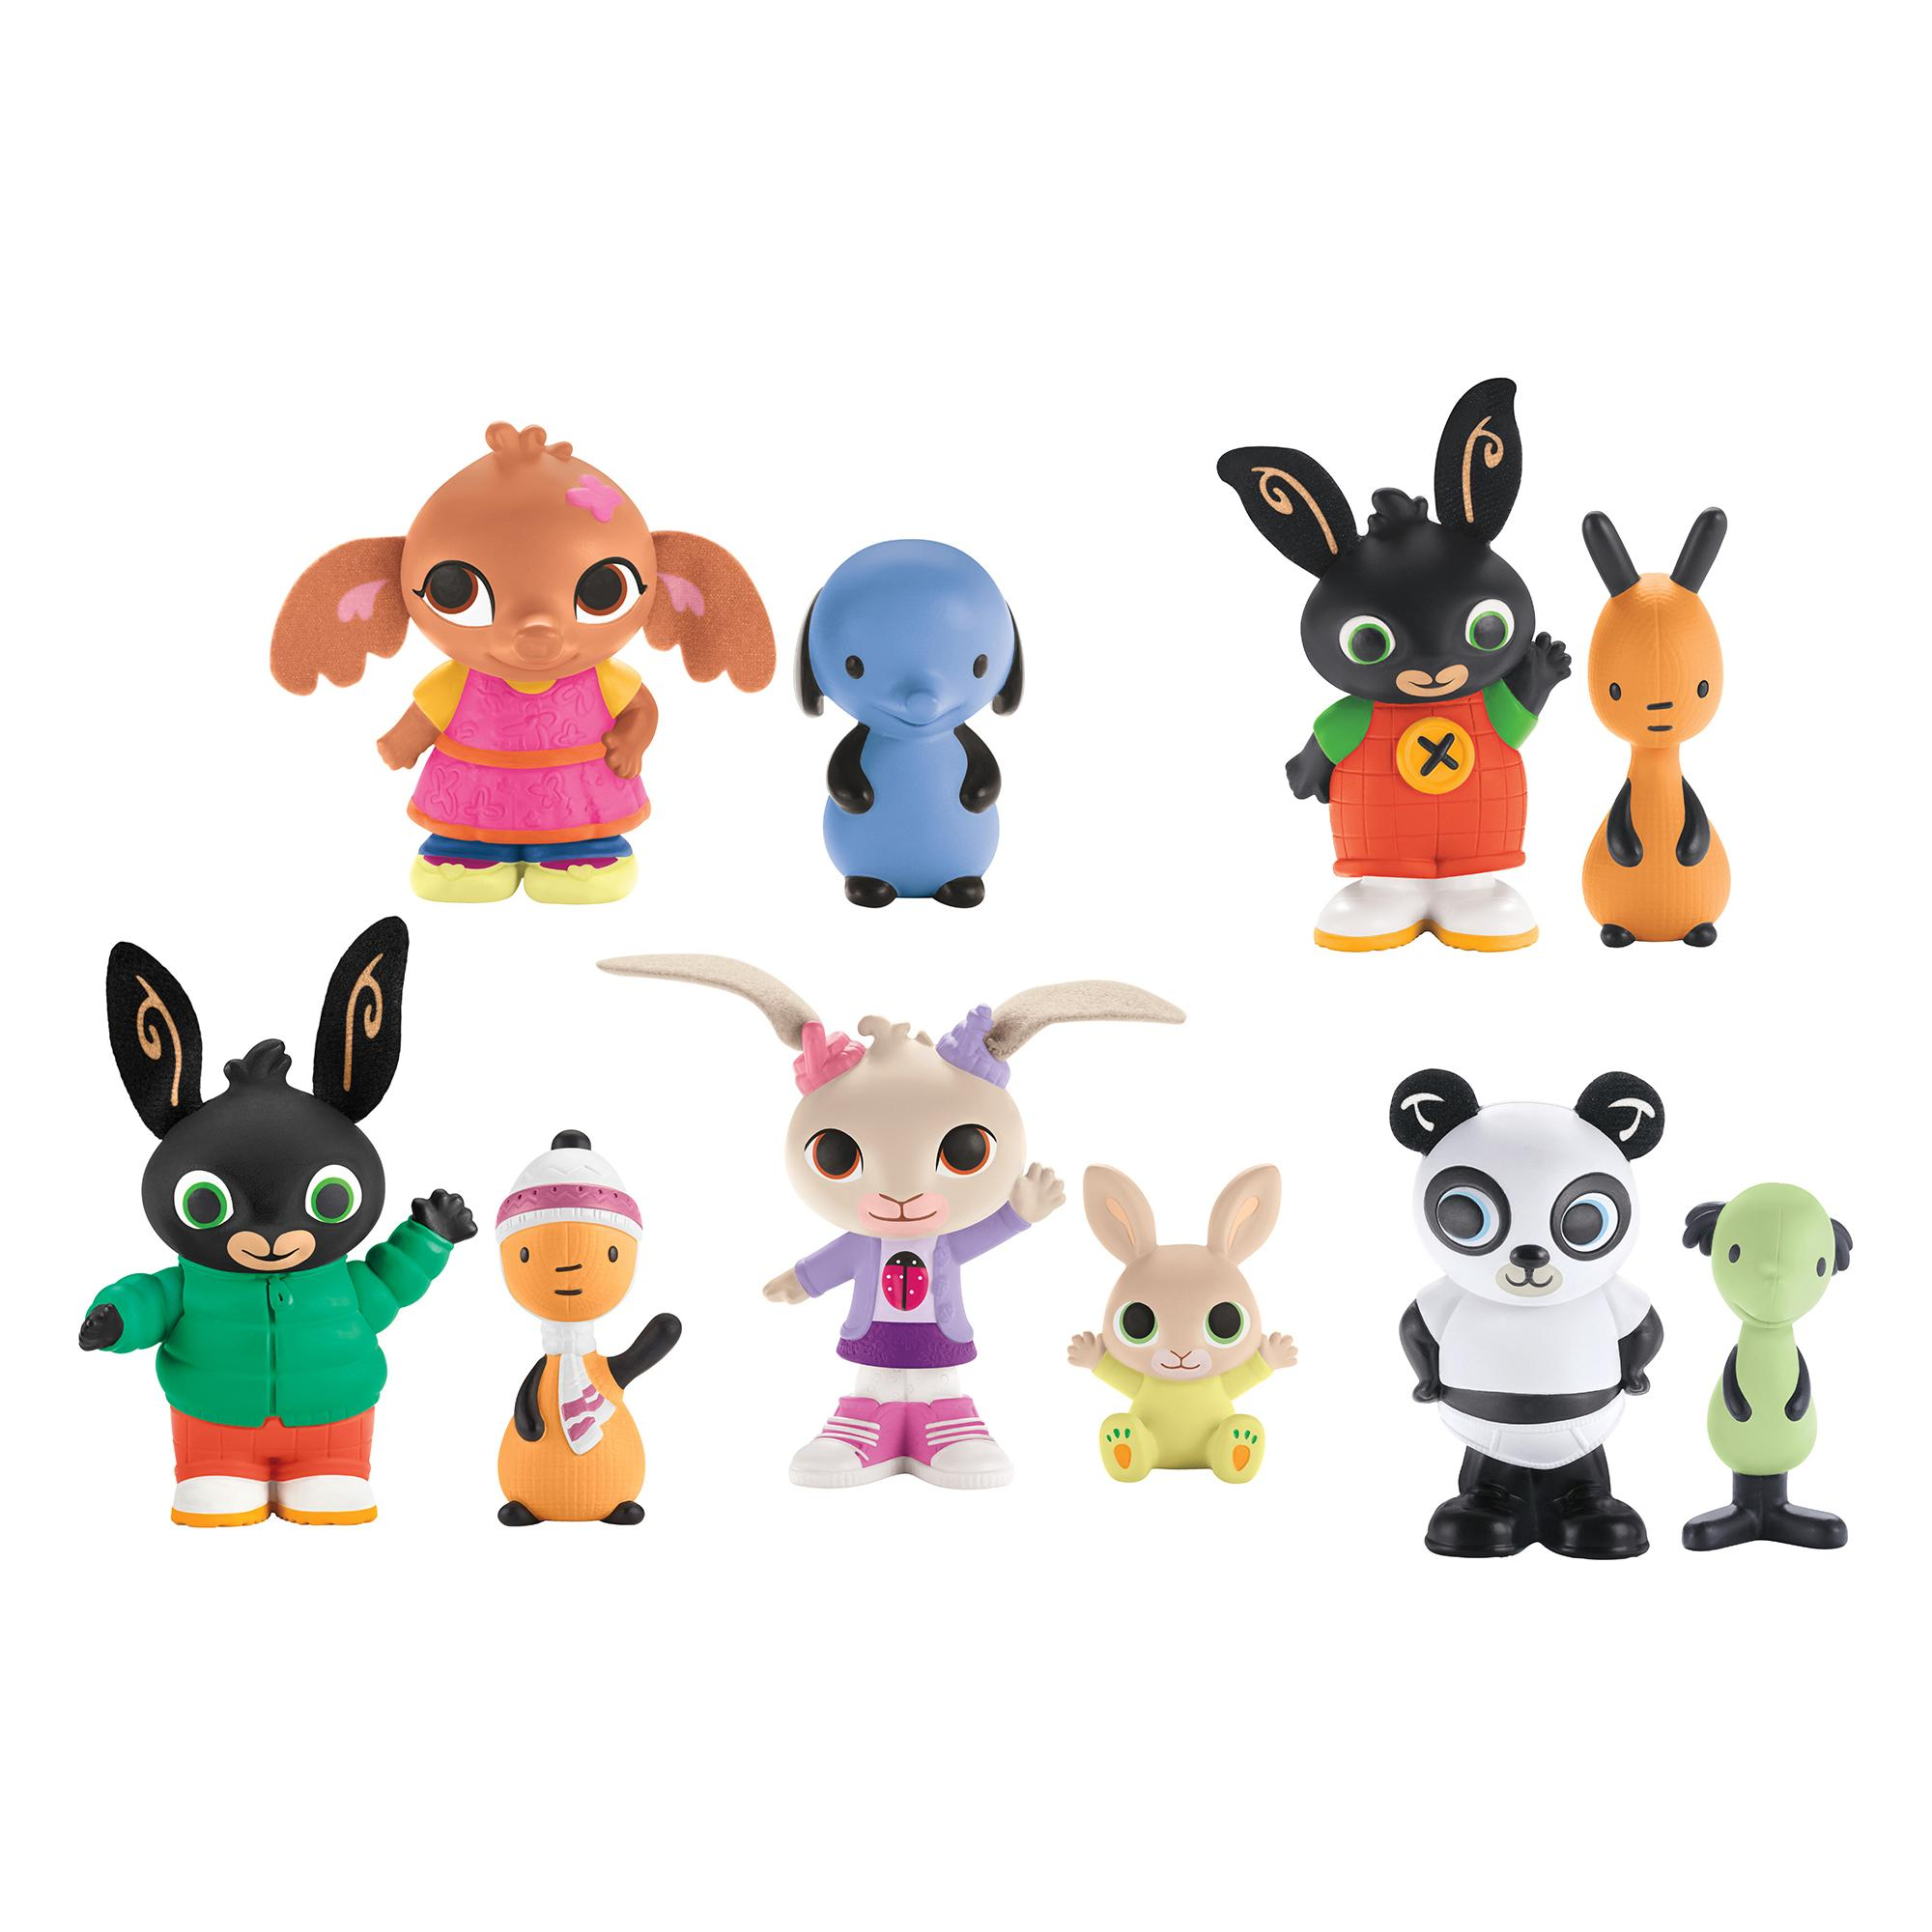 Bing clipart toy. Fisher price figure assortment